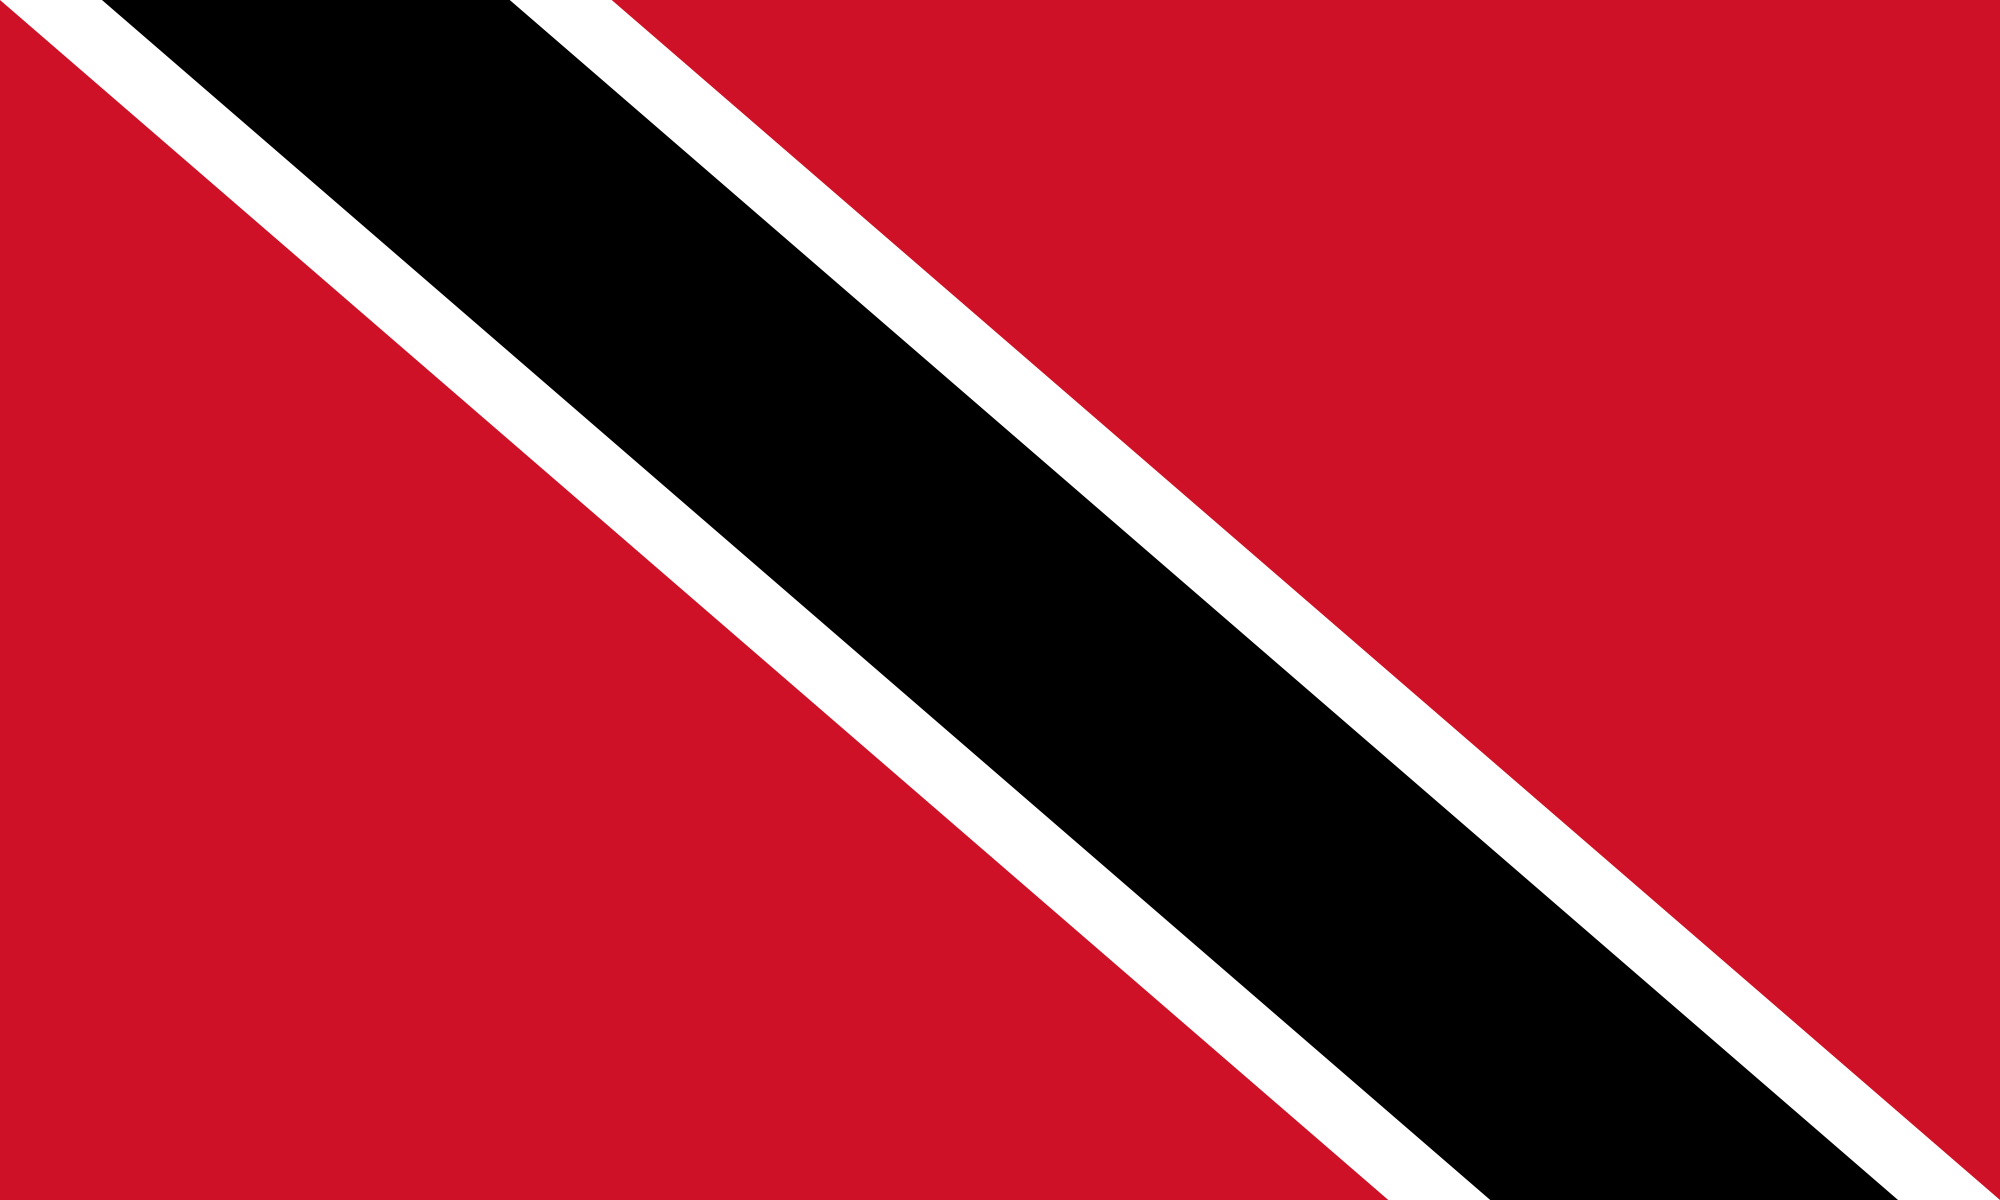 trinidad and tobago adopted this flag on 31 aug 1962 the day